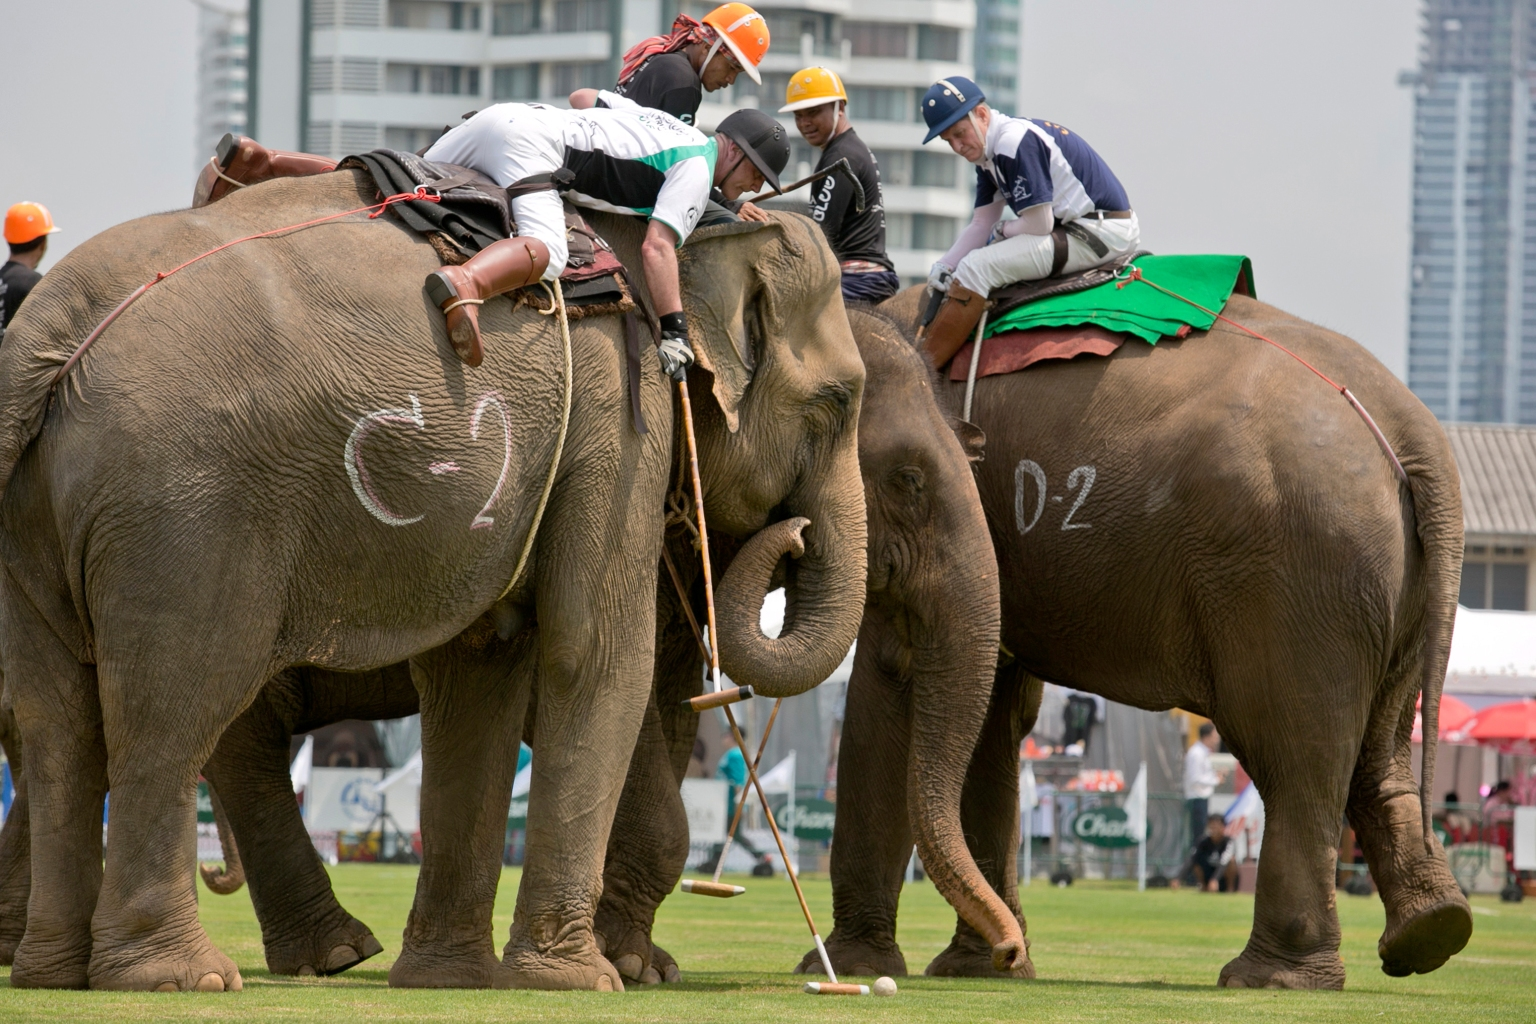 TOPSHOT - Players assisted by mahouts go for the ball during the King's Cup Elephant Polo Tournament in Bangkok on March 8, 2018.  Elephants tromped across a manicured pitch in Bangkok on March 8 in the kick-off of a polo tournament raising money for the animals, who are celebrated as a national symbol but often subject to abuse. / AFP PHOTO / Krit PHROMSAKLA        (Photo credit should read KRIT PHROMSAKLA/AFP/Getty Images)